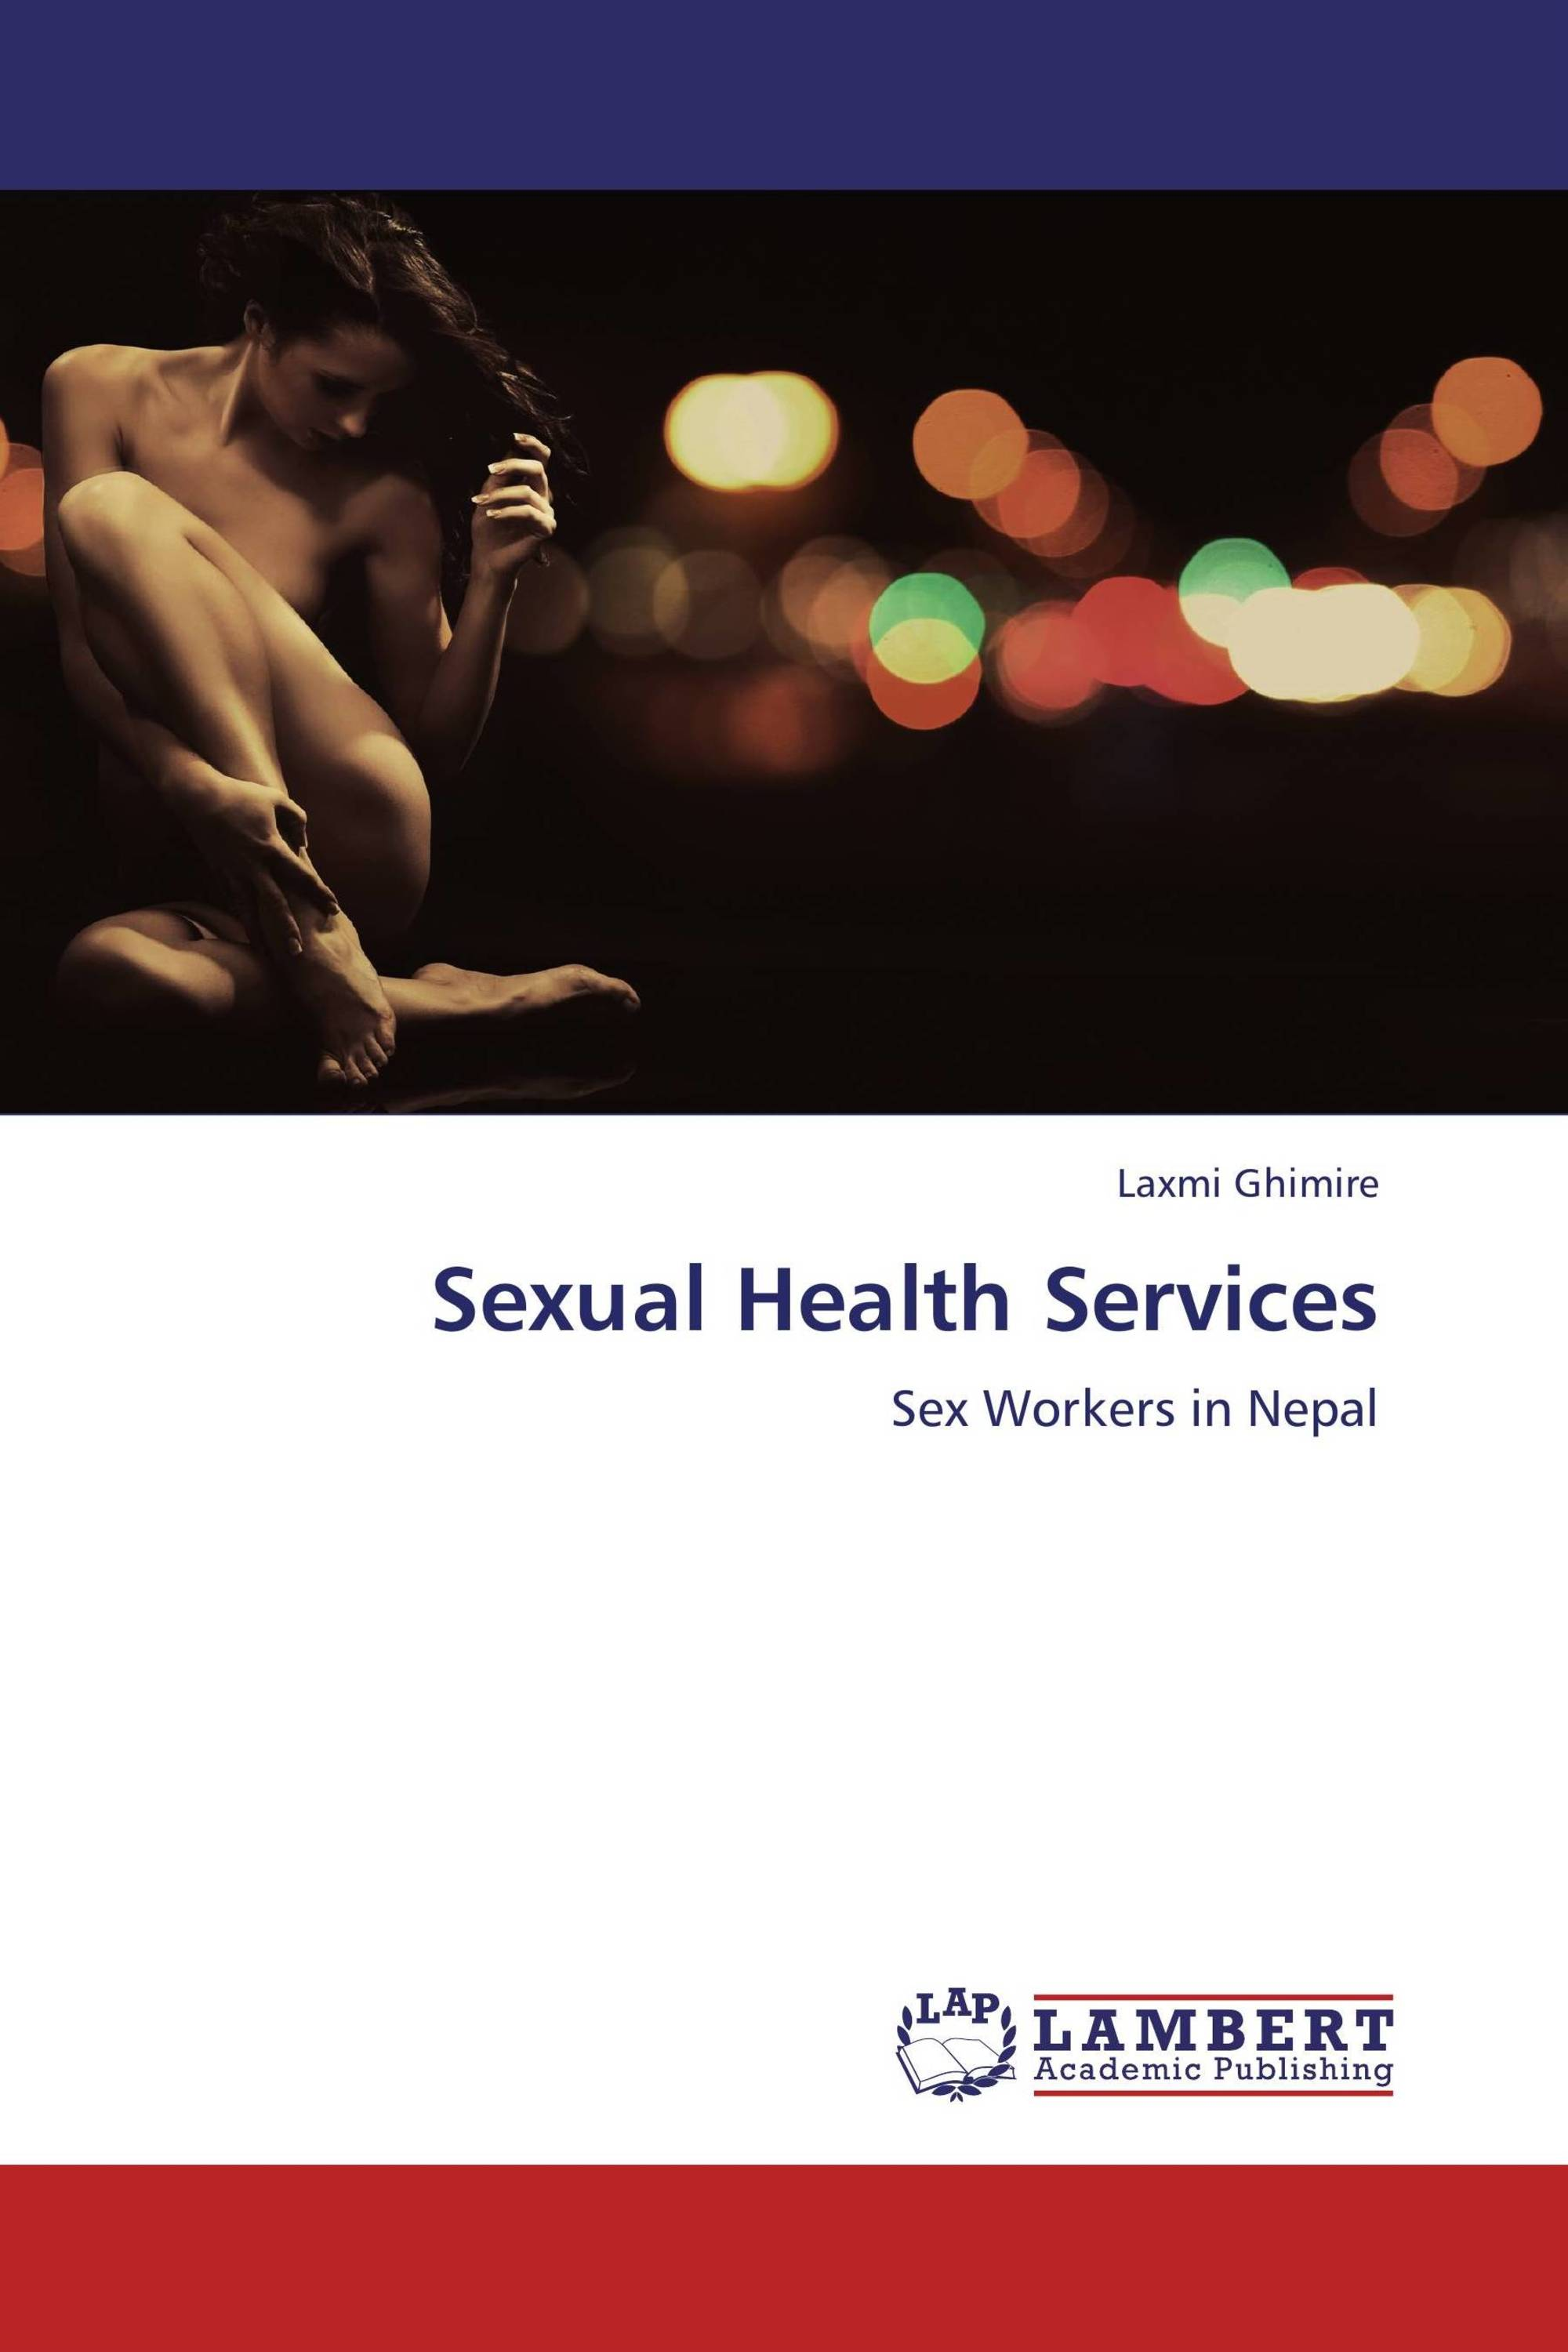 Sexual Health Services